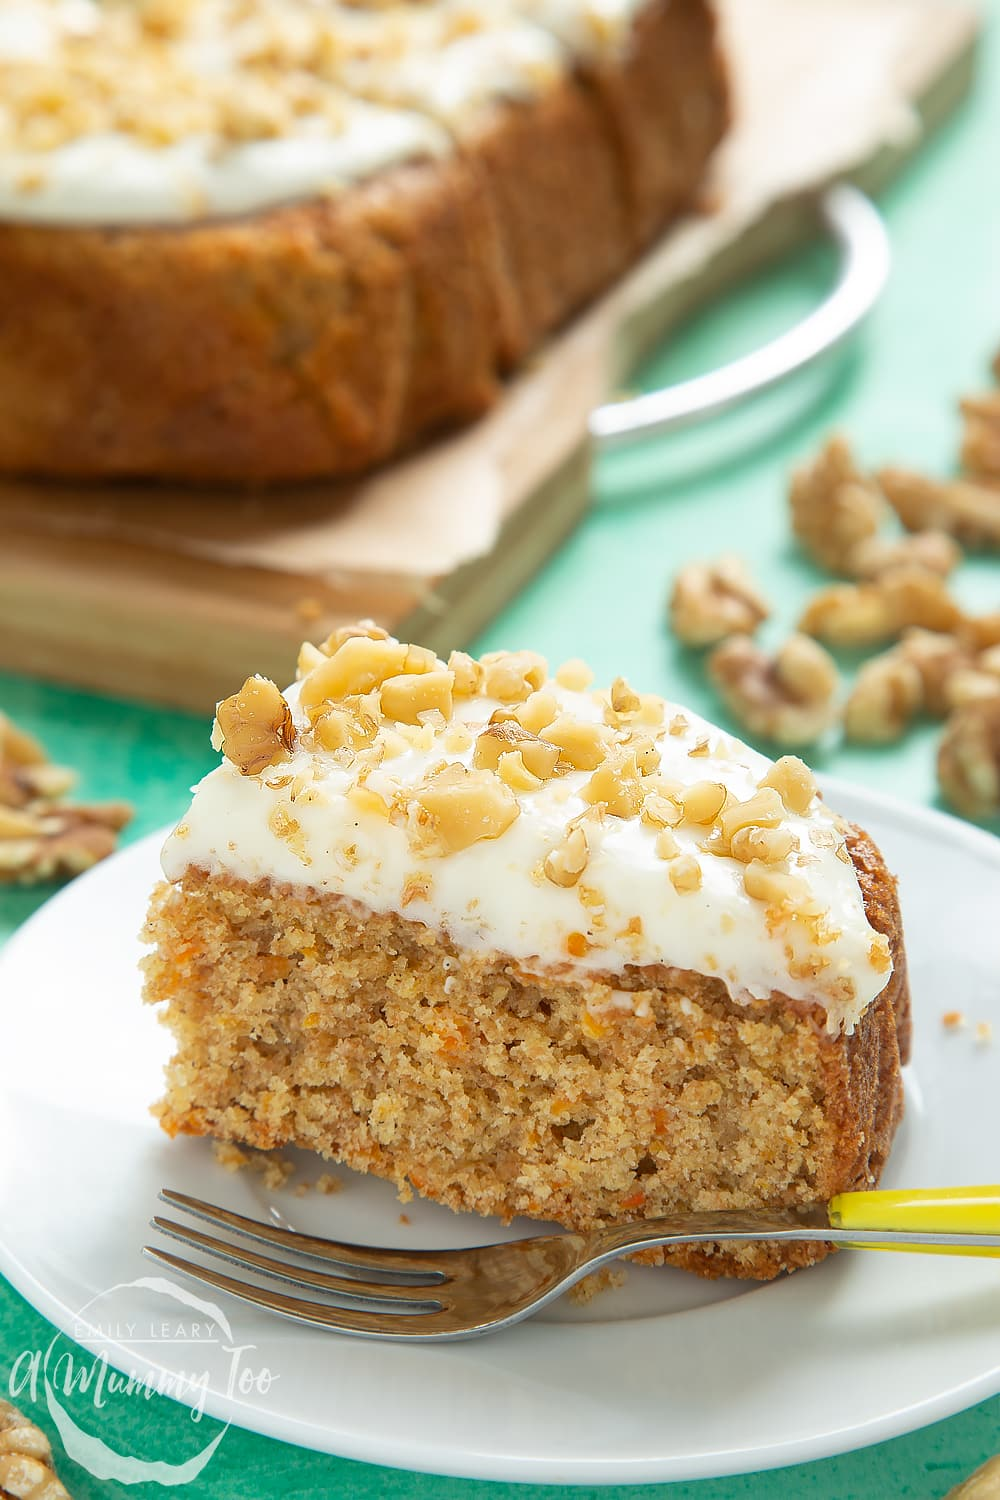 A serving of carrot cake tray bake sliced on a plate with a fork.